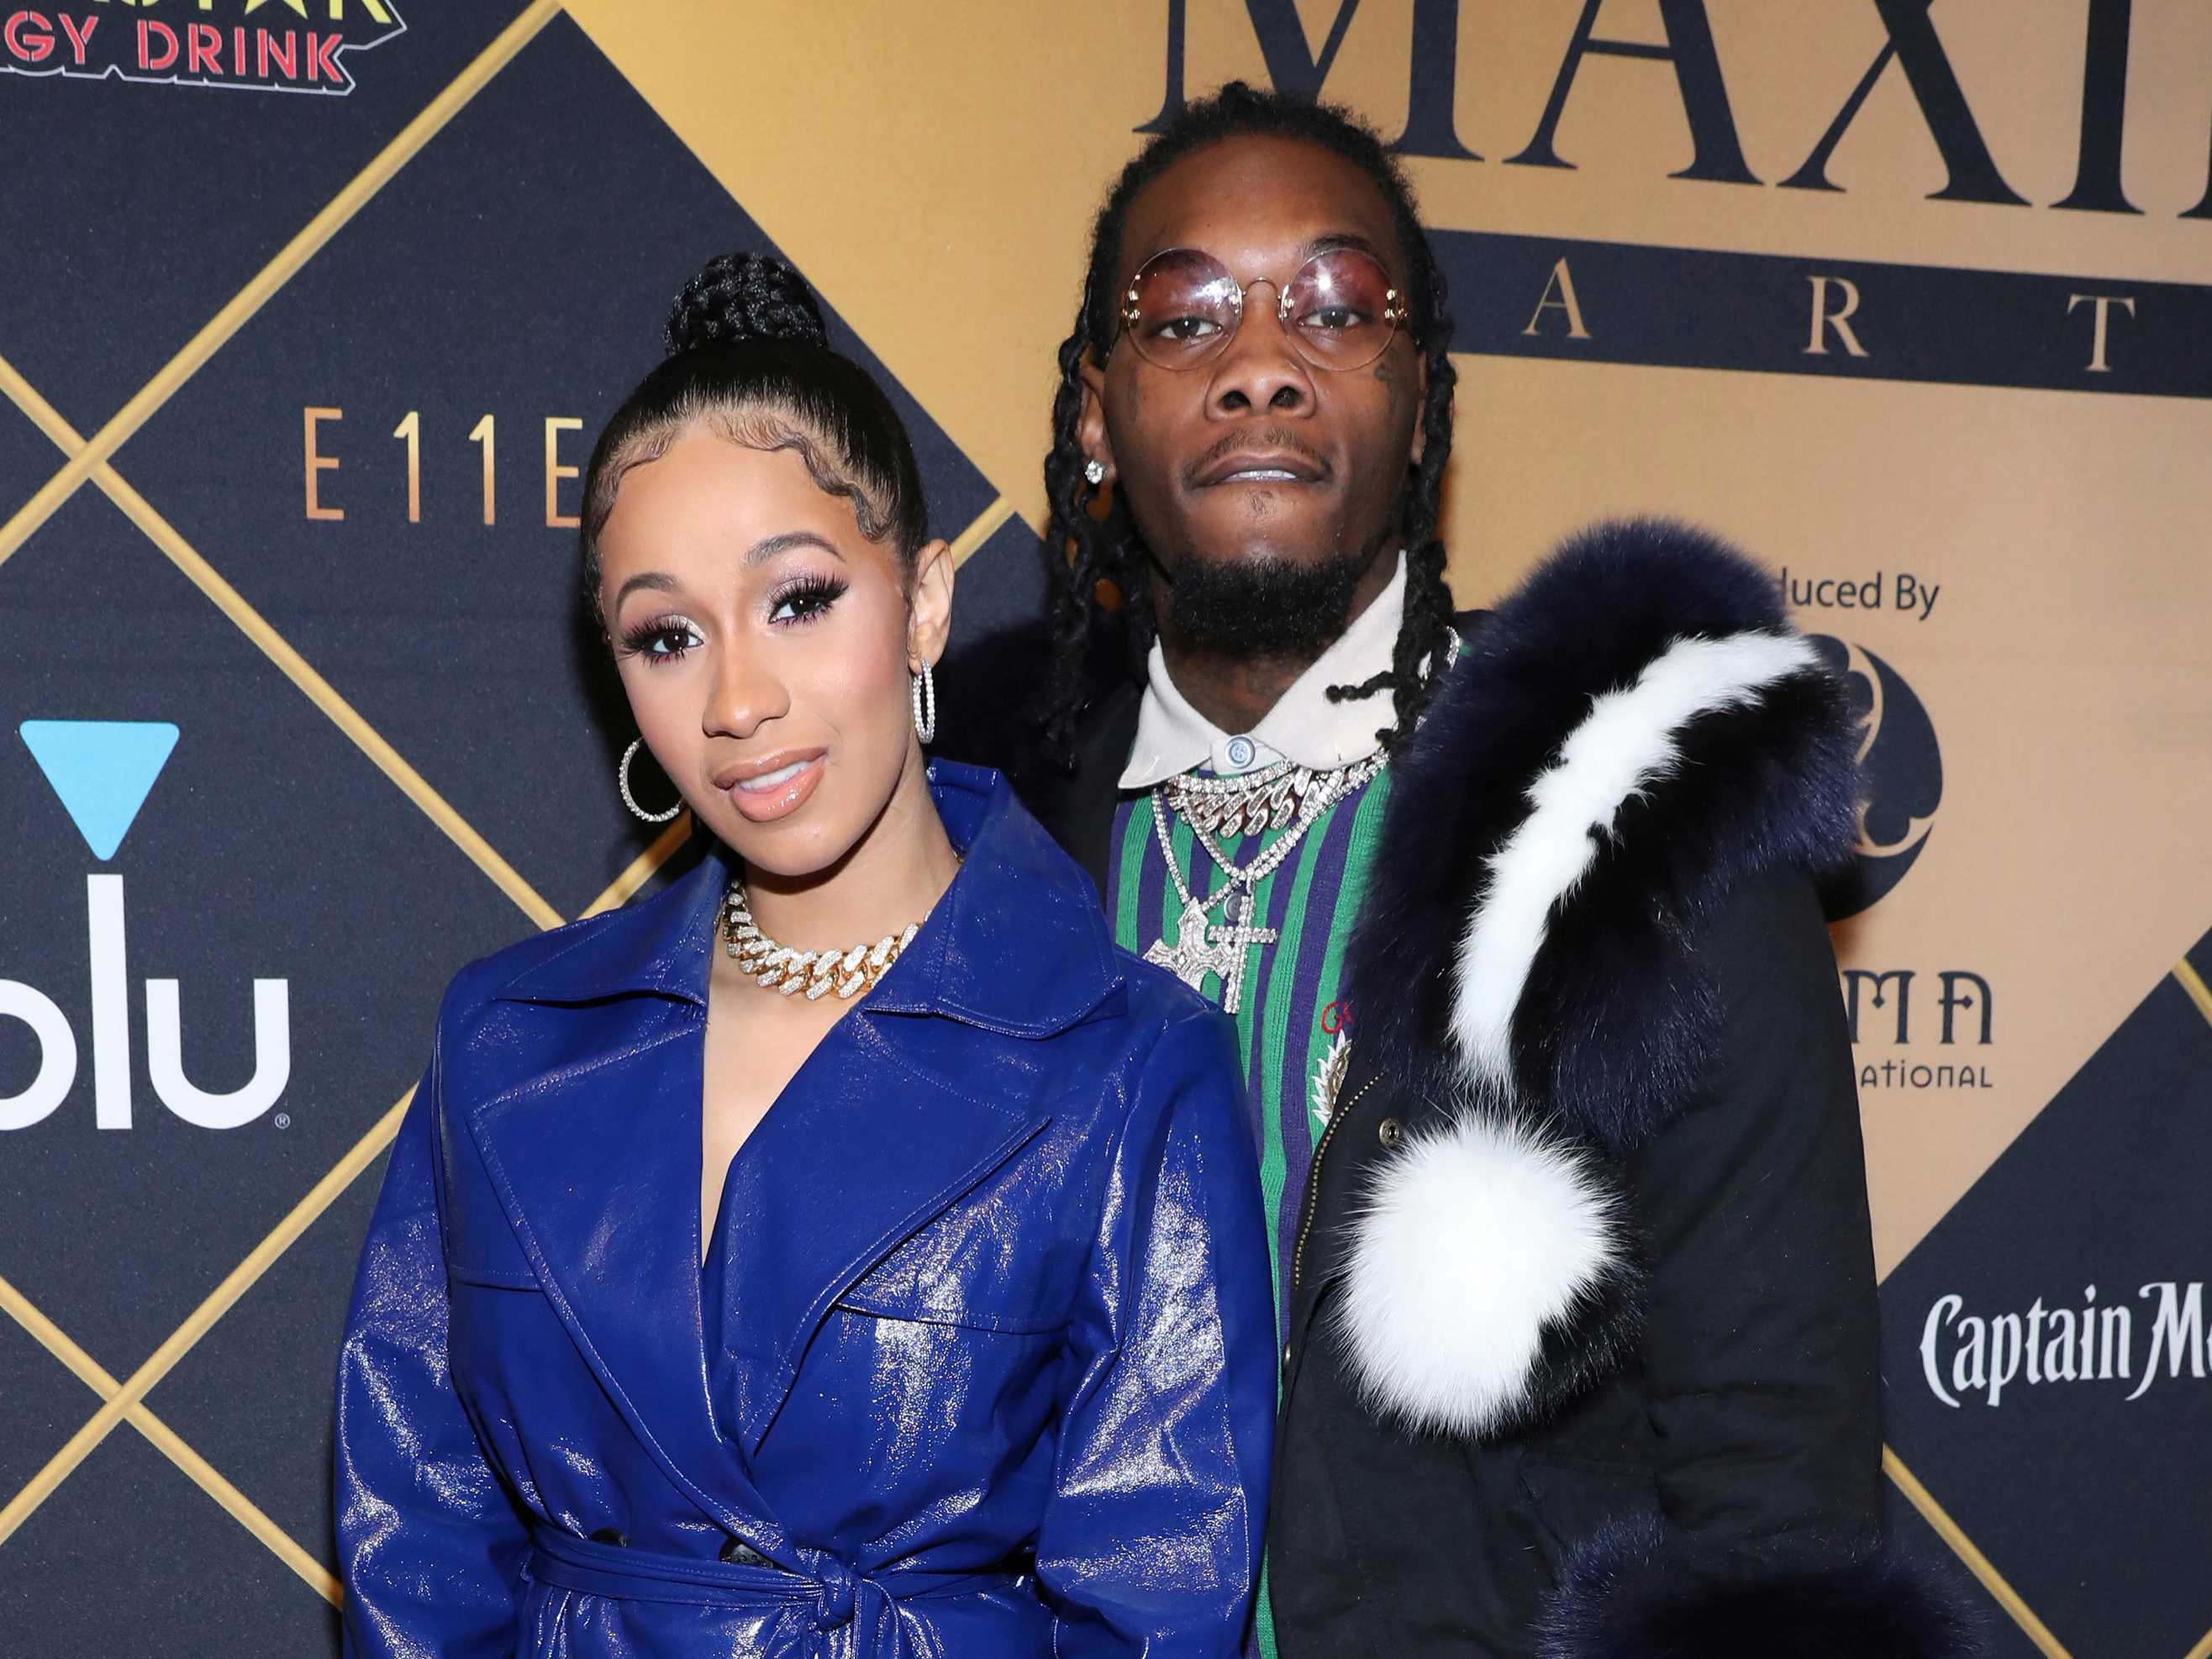 Watch: Cardi B 'No Longer Together' with Offset